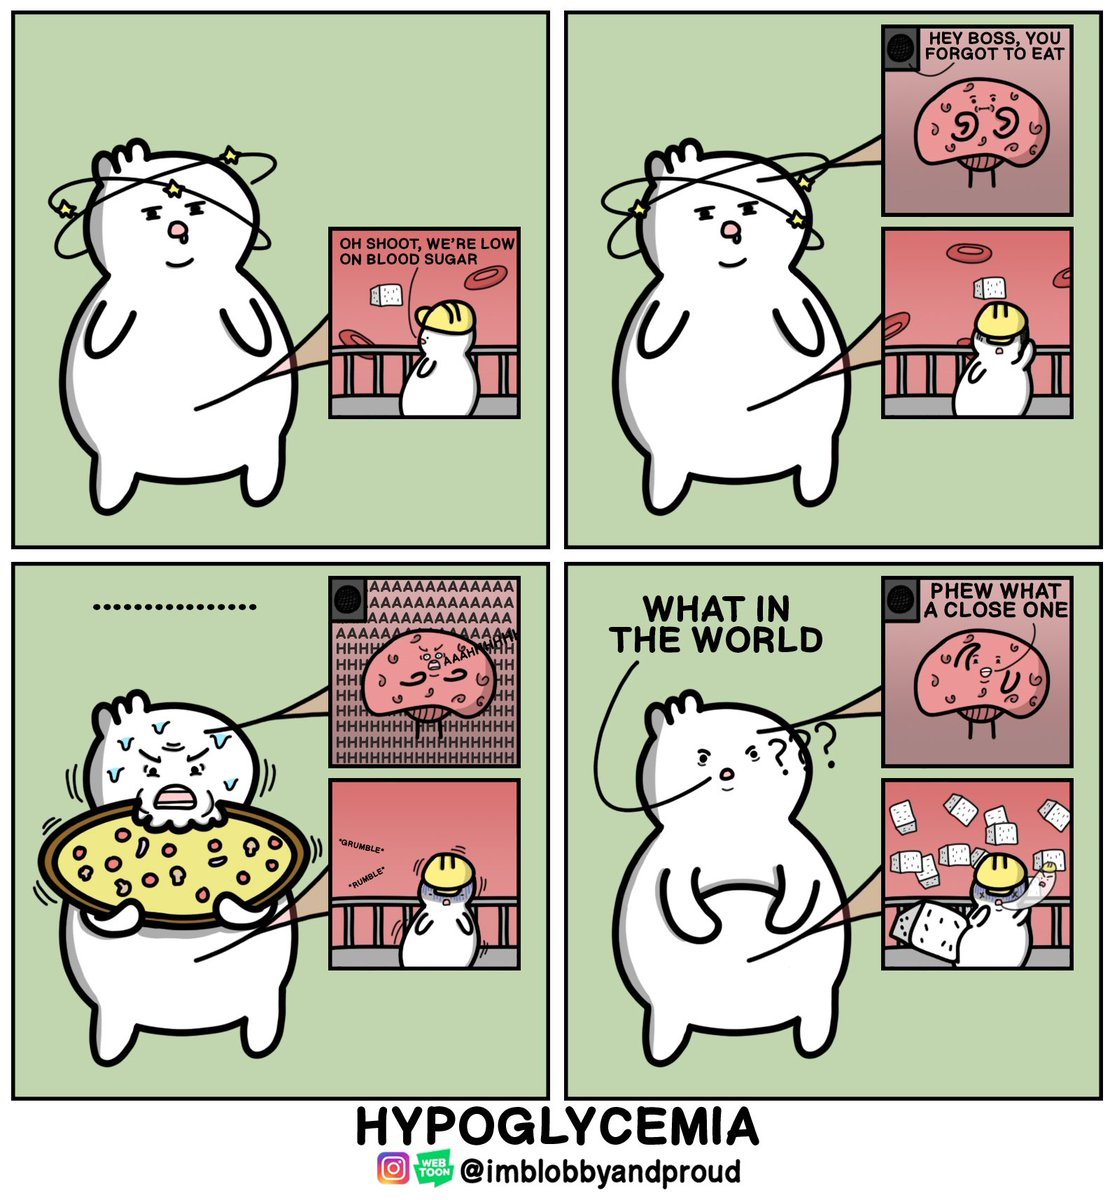 Imblobbyandproud On Twitter I Get Hypoglycemia So Easily Q Q Which Makes For The Perfect Comic For Day 9 Prompt Of Comictober Sugar Comictober2020 Comictober Comics Webcomics Funny Meme Humor Lmao Hypoglycemia Food